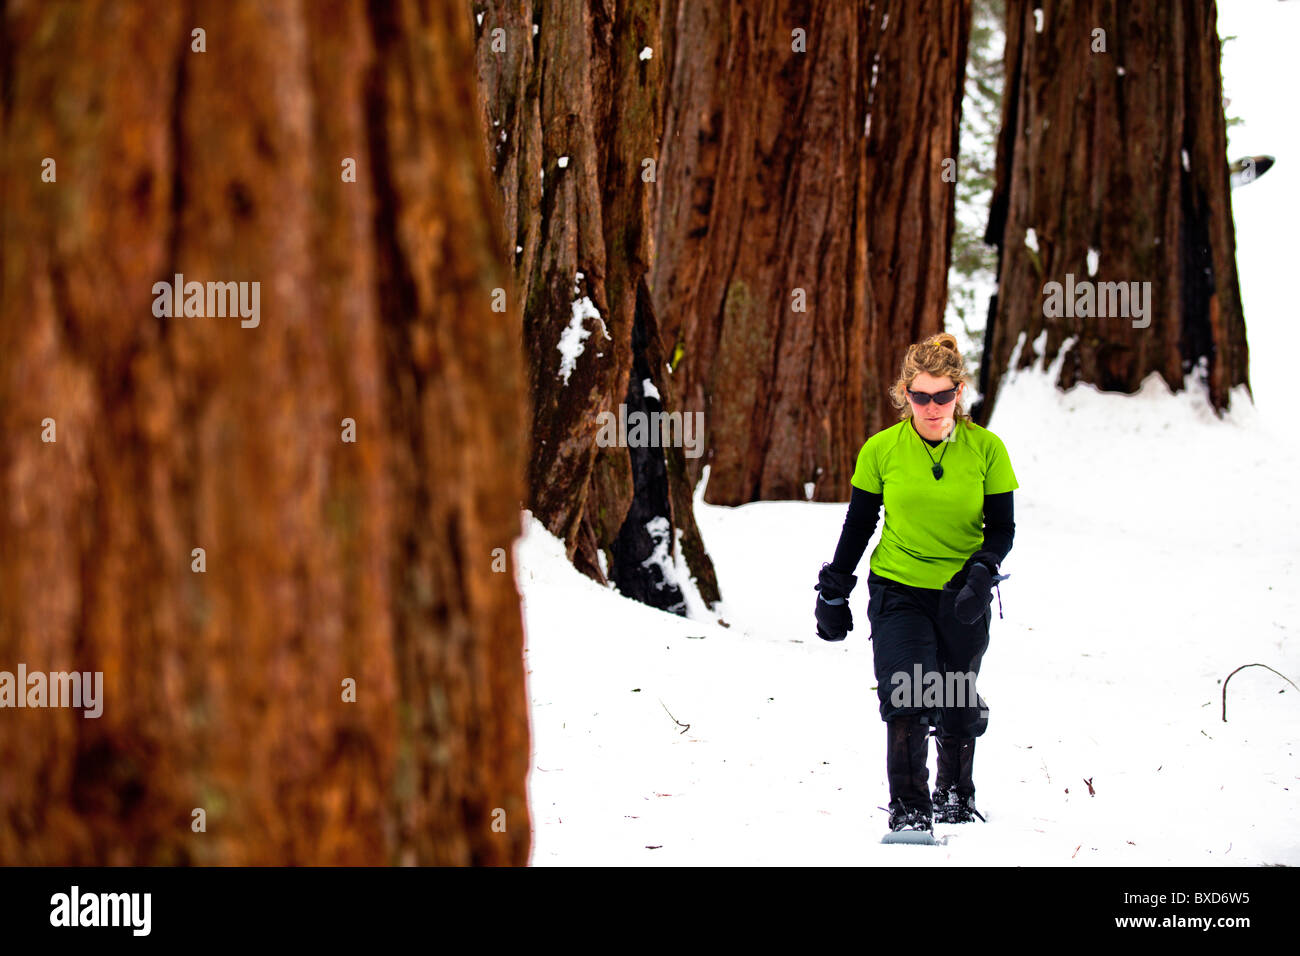 A female hiker snowshoes through Sequoia National Park, California. - Stock Image